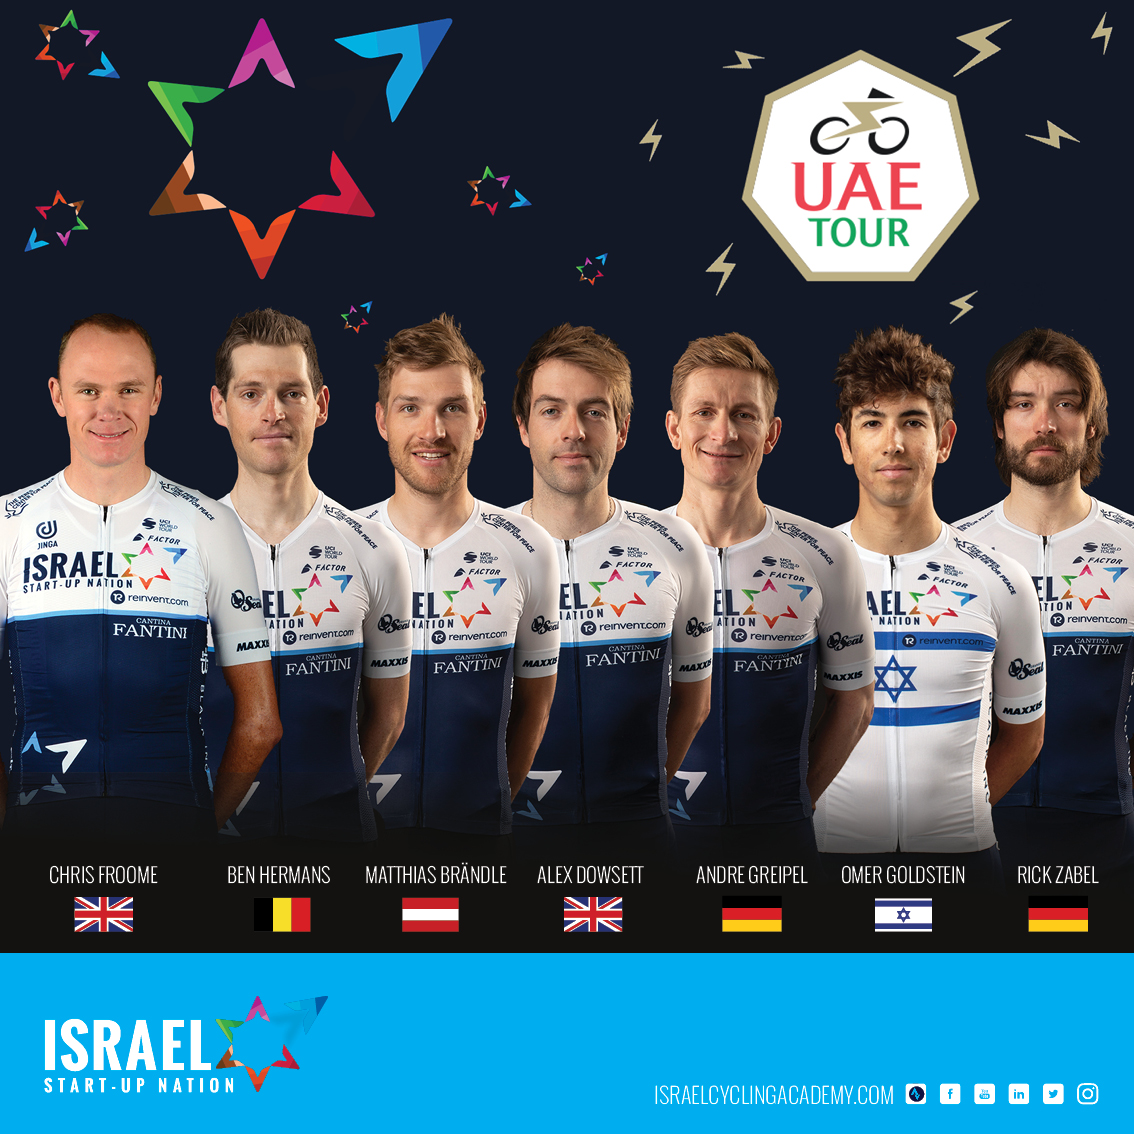 Team Israel Start-Up Nation lines up for UAE Tour, further building a warm peace